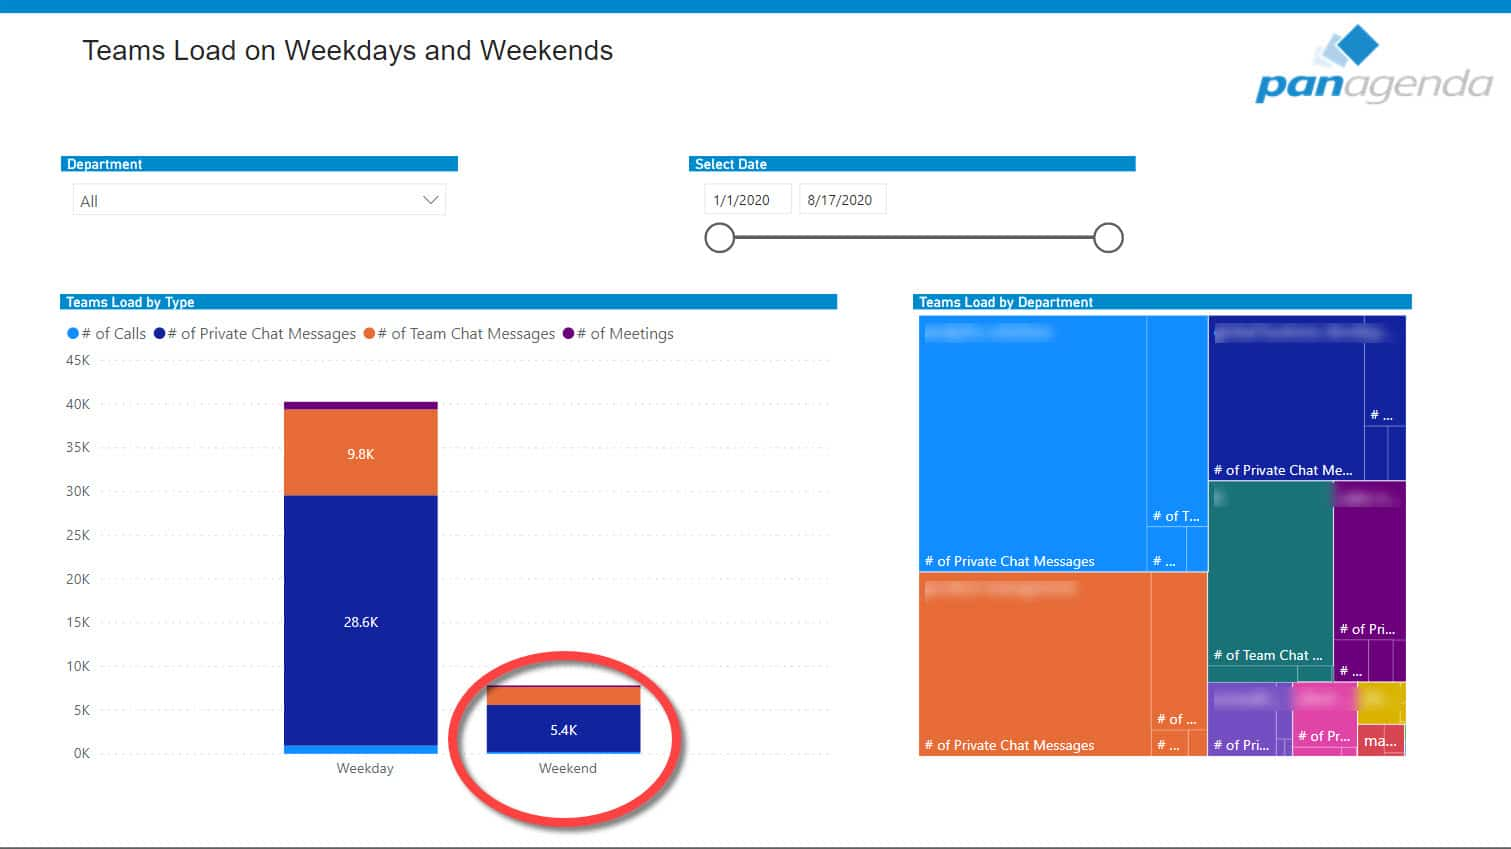 MS Teams Load Analysis Comparison on Weekdays and Weekends